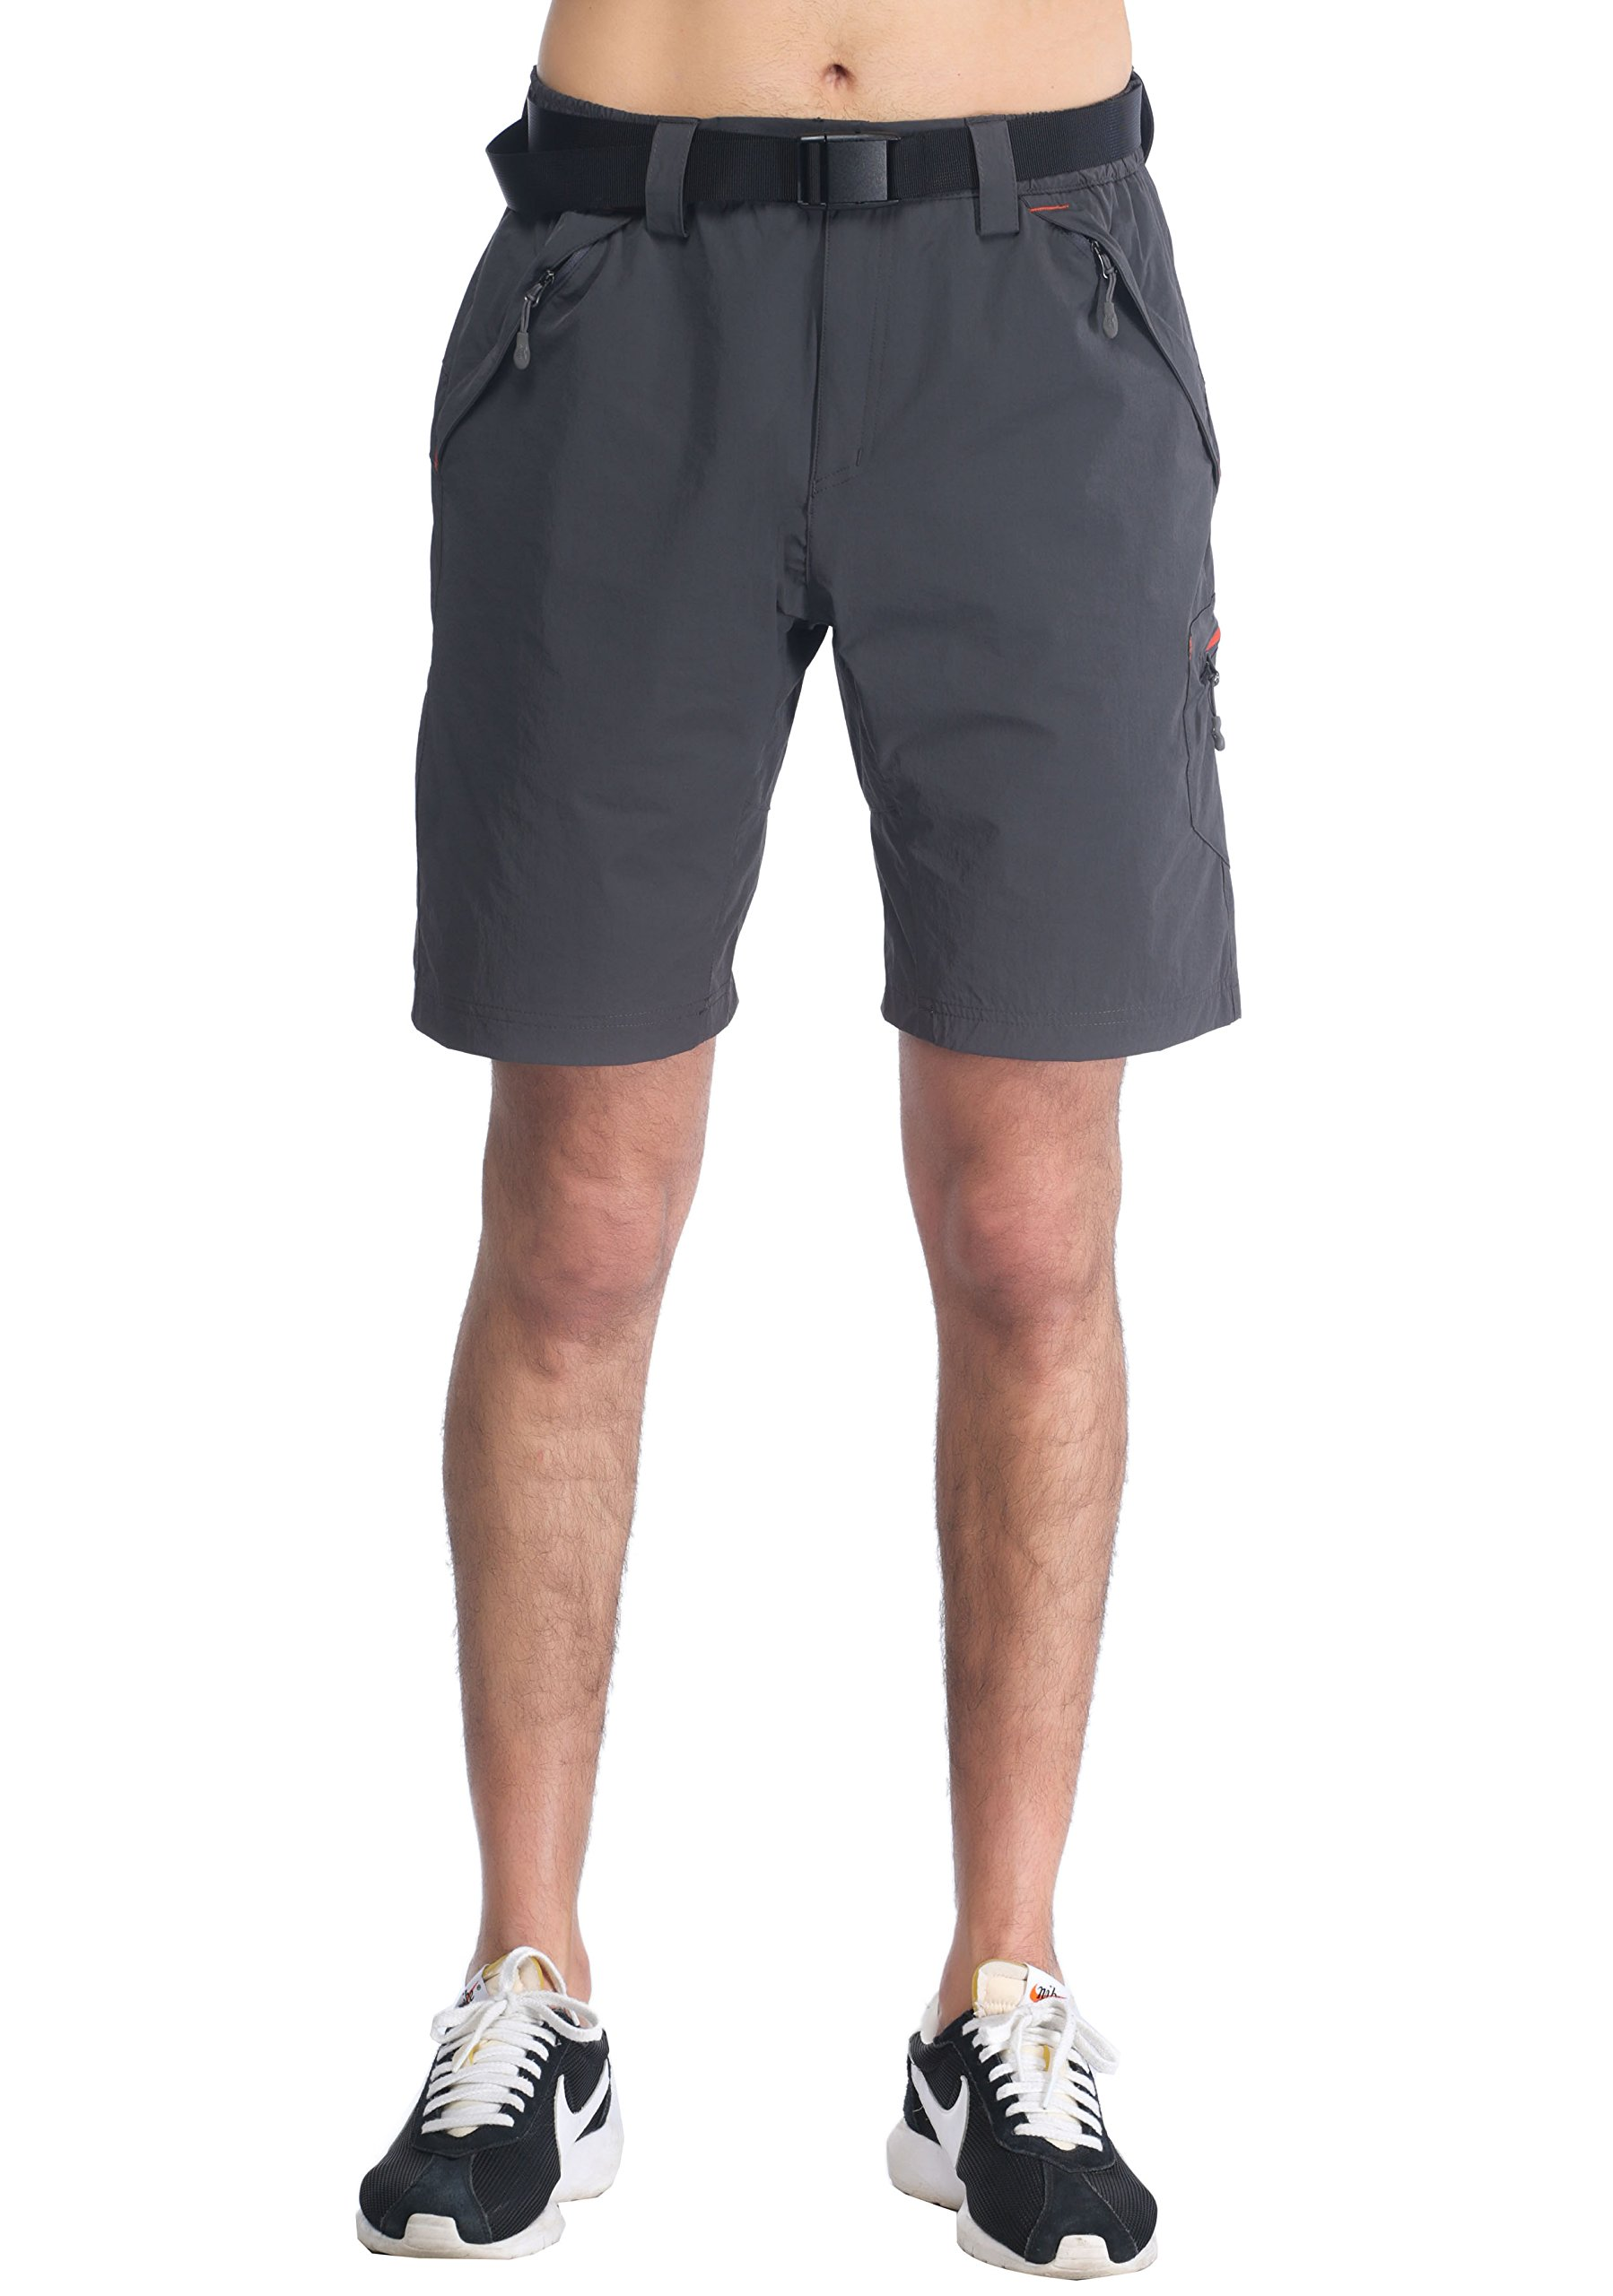 MIERSPORTS Lightweight Men's Cargo Shorts Water Resistant Outdoor Shorts with 4 Zip-closed Pockets, Graphite Grey, L